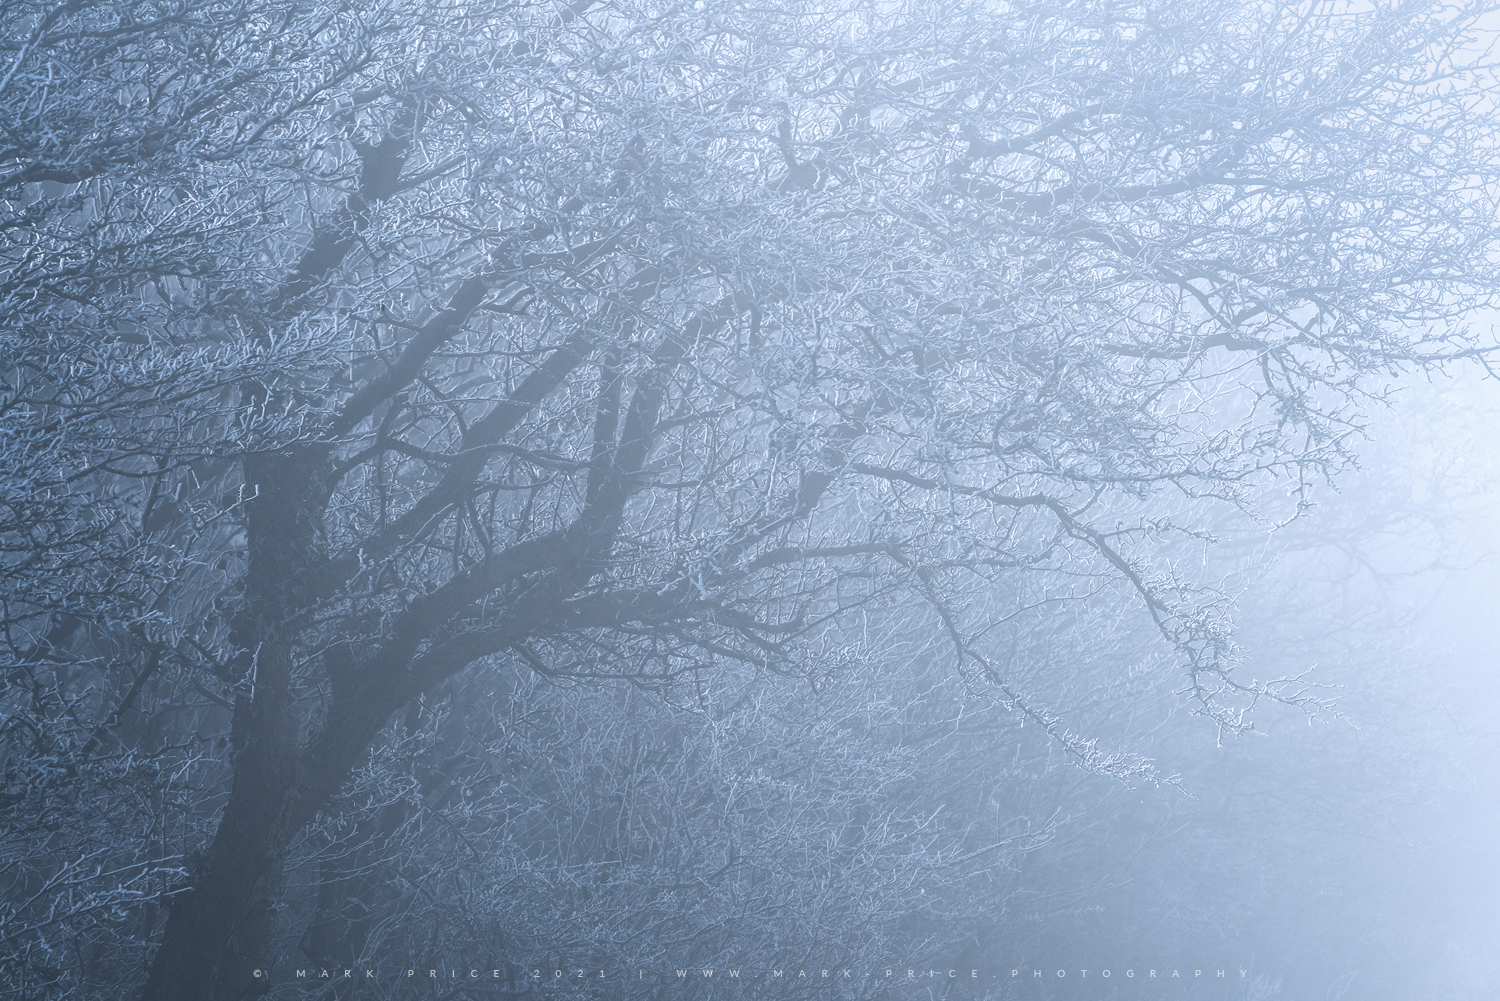 Winter grips the tree line on the South Downs, Sussex, 2021